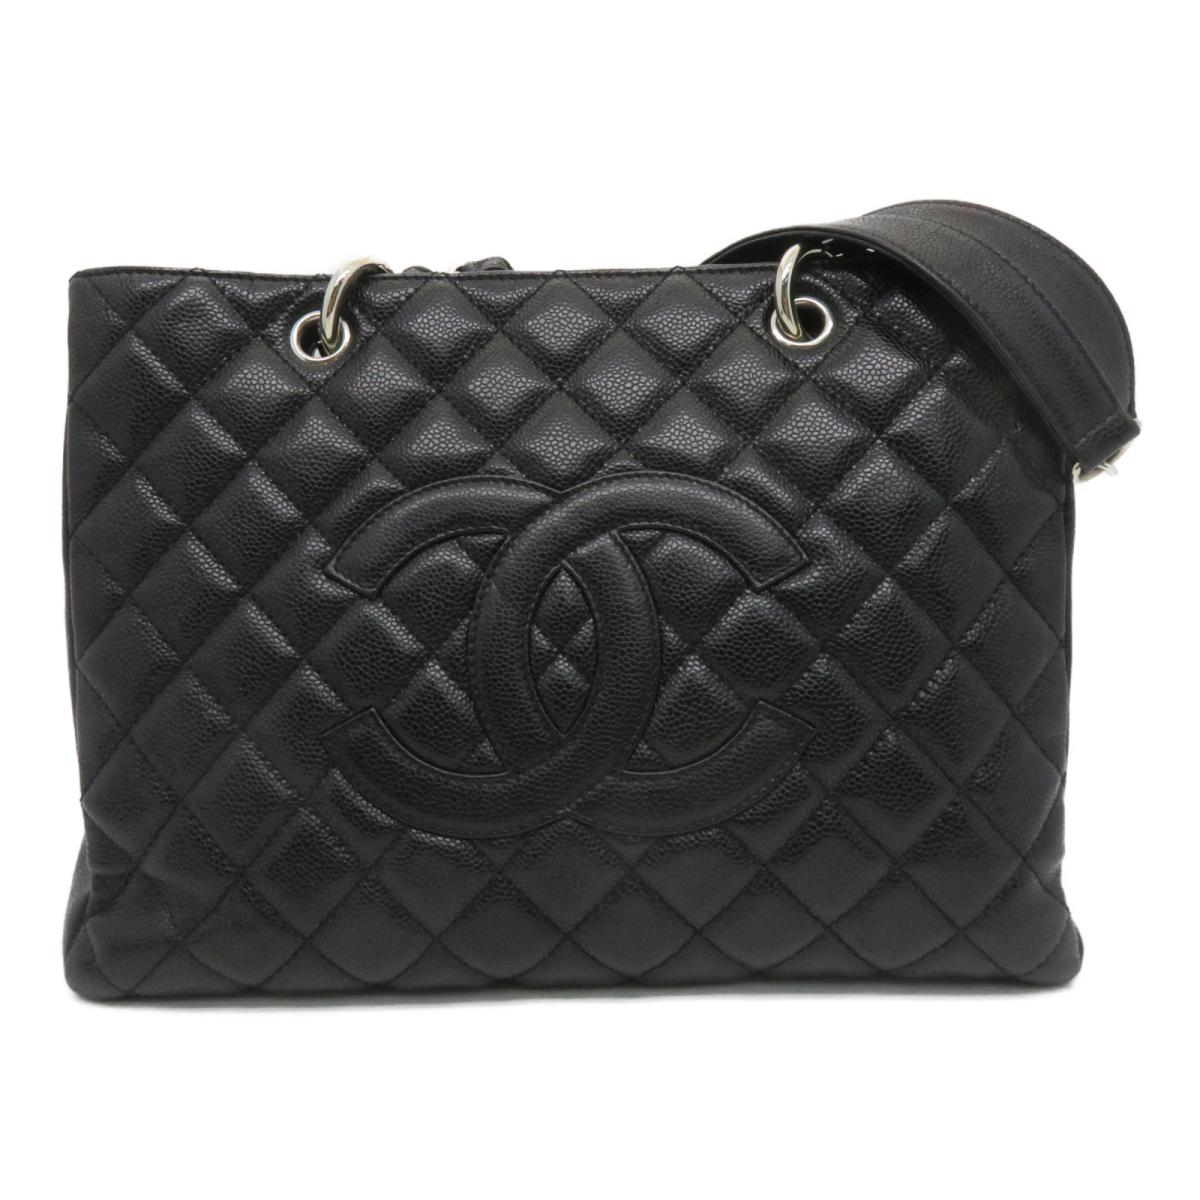 CHANEL CHANEL バッグ   菱格Caviar皮革Grand Shopping Tote Bag肩背袋黑色